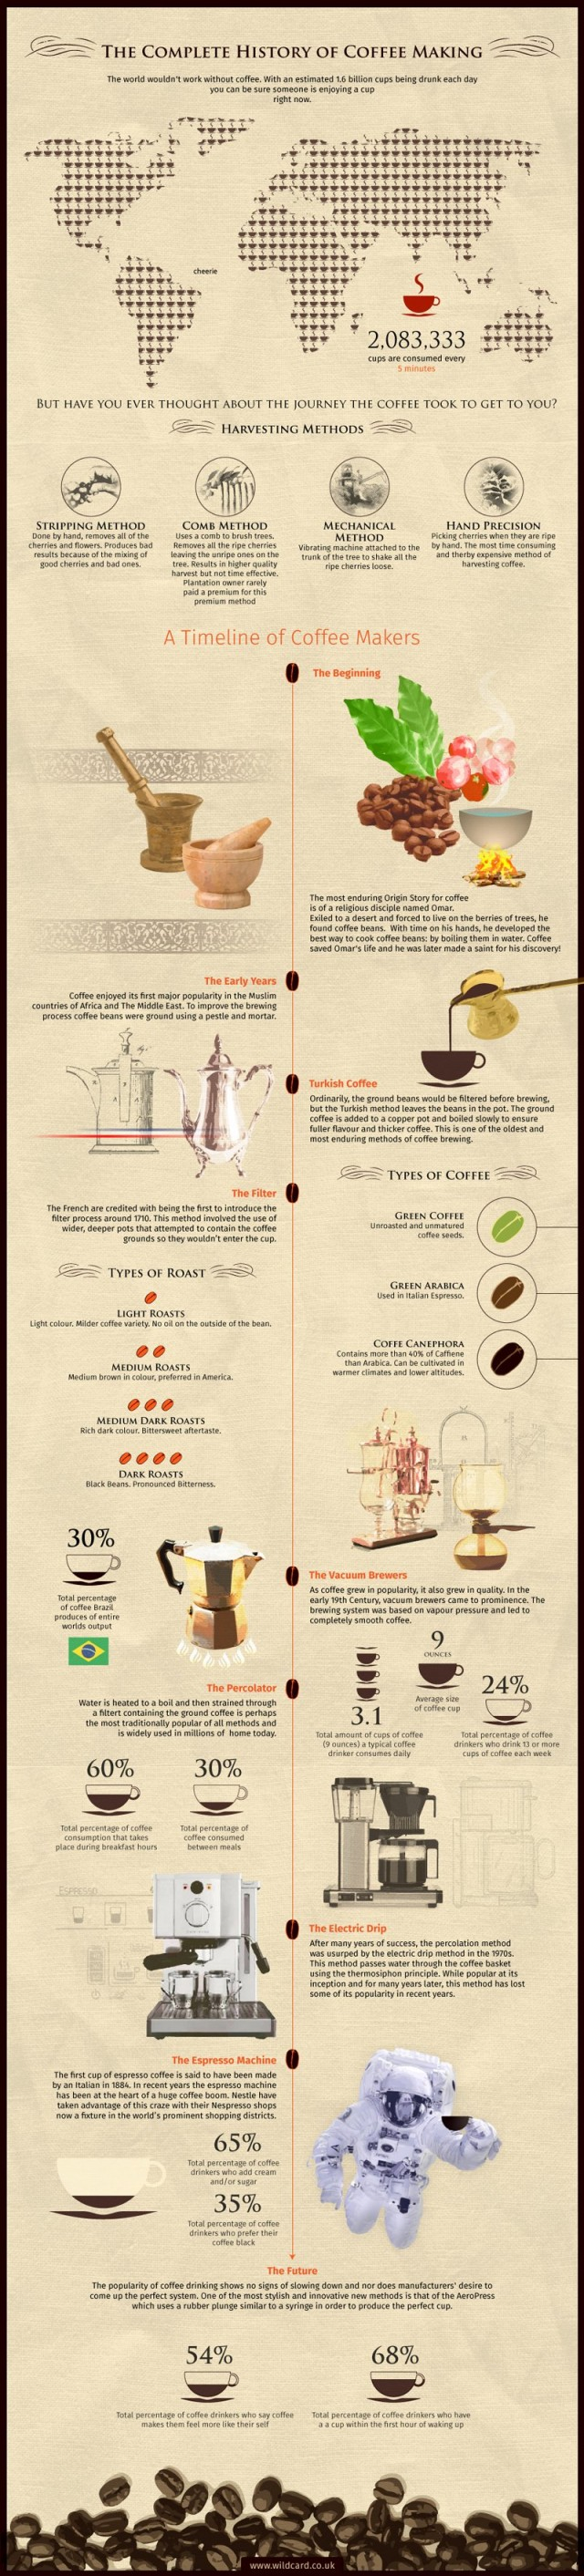 13. The complete history of coffee